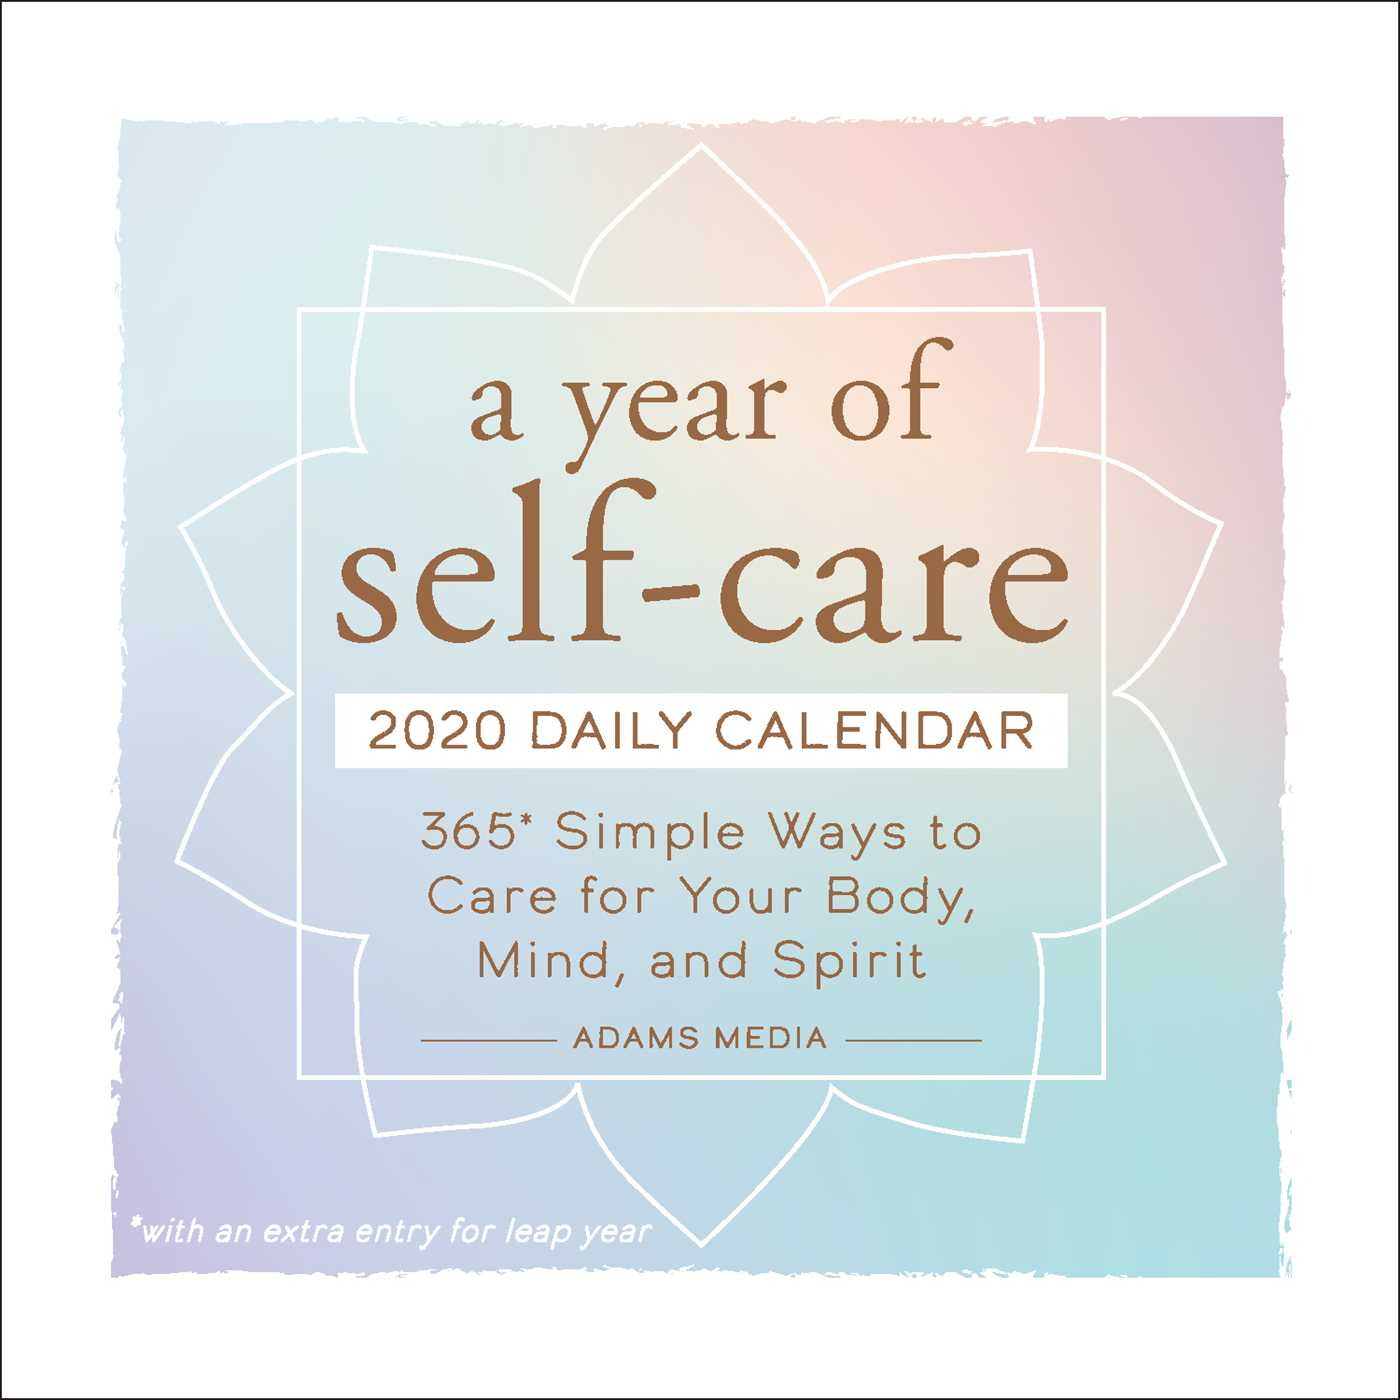 A Year Of Self-Care 2020 Daily Calendar - Book Summary & Video